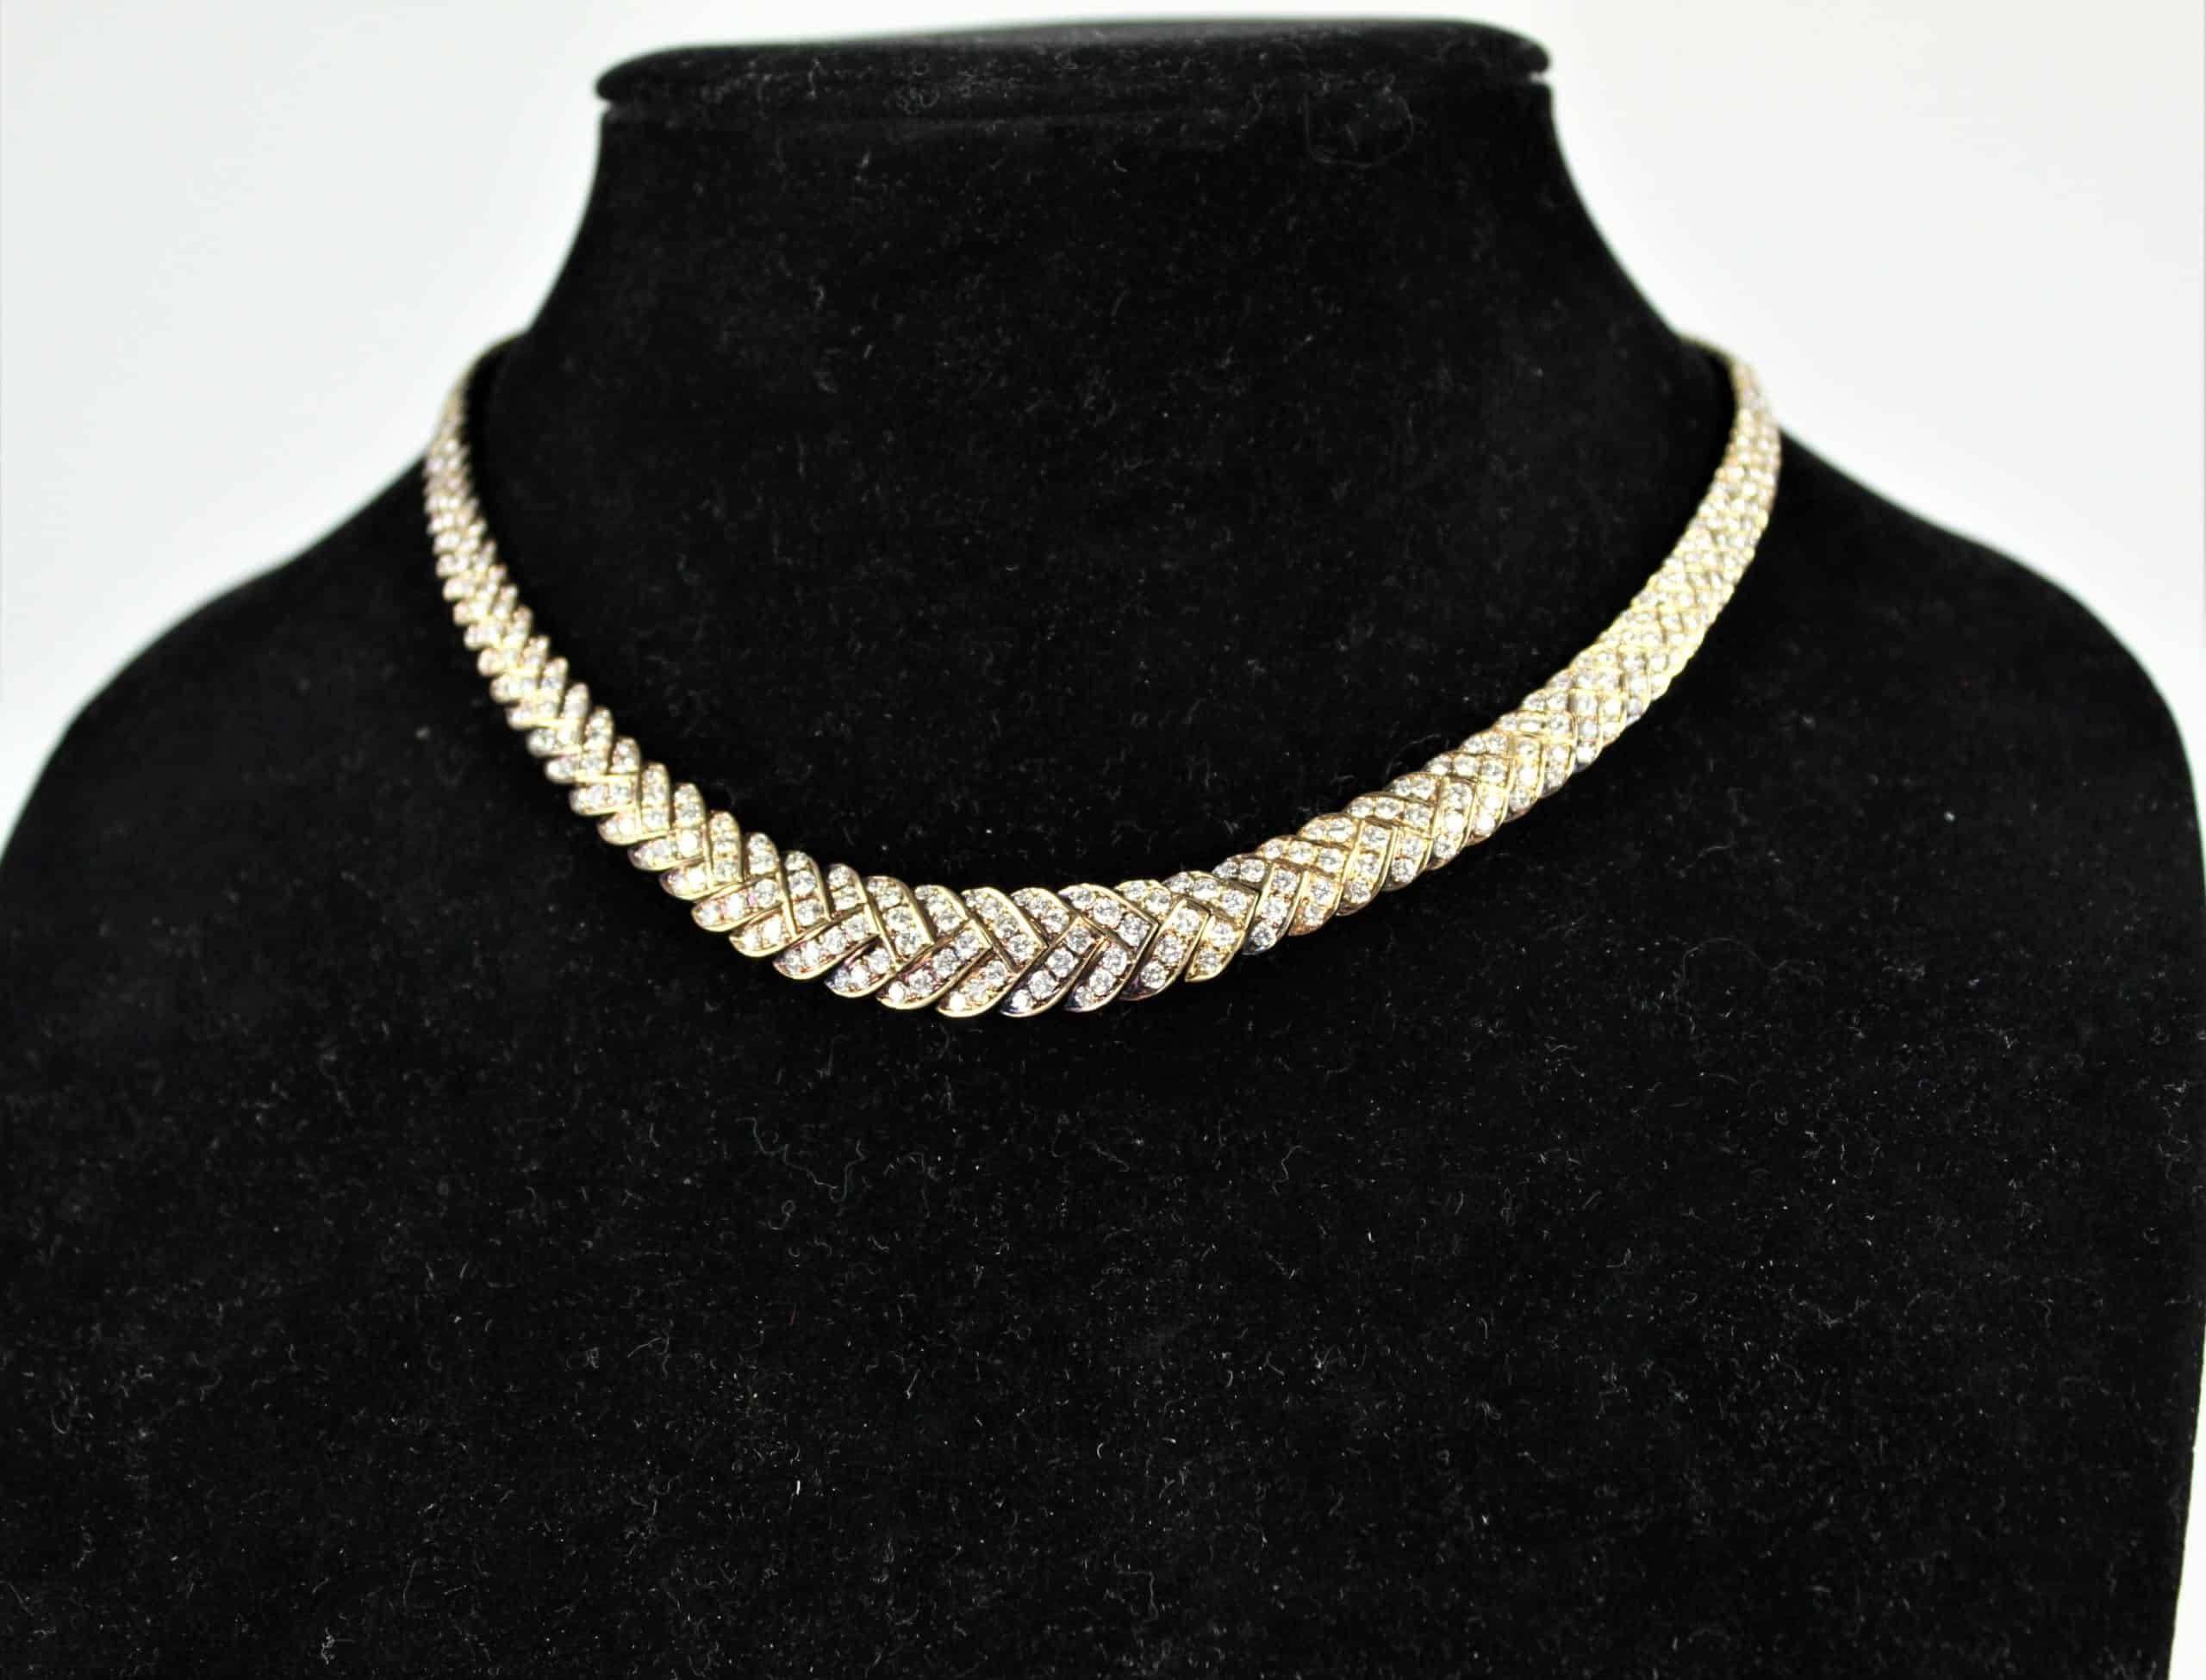 Italian 18 Carat Gold and Diamond Necklace